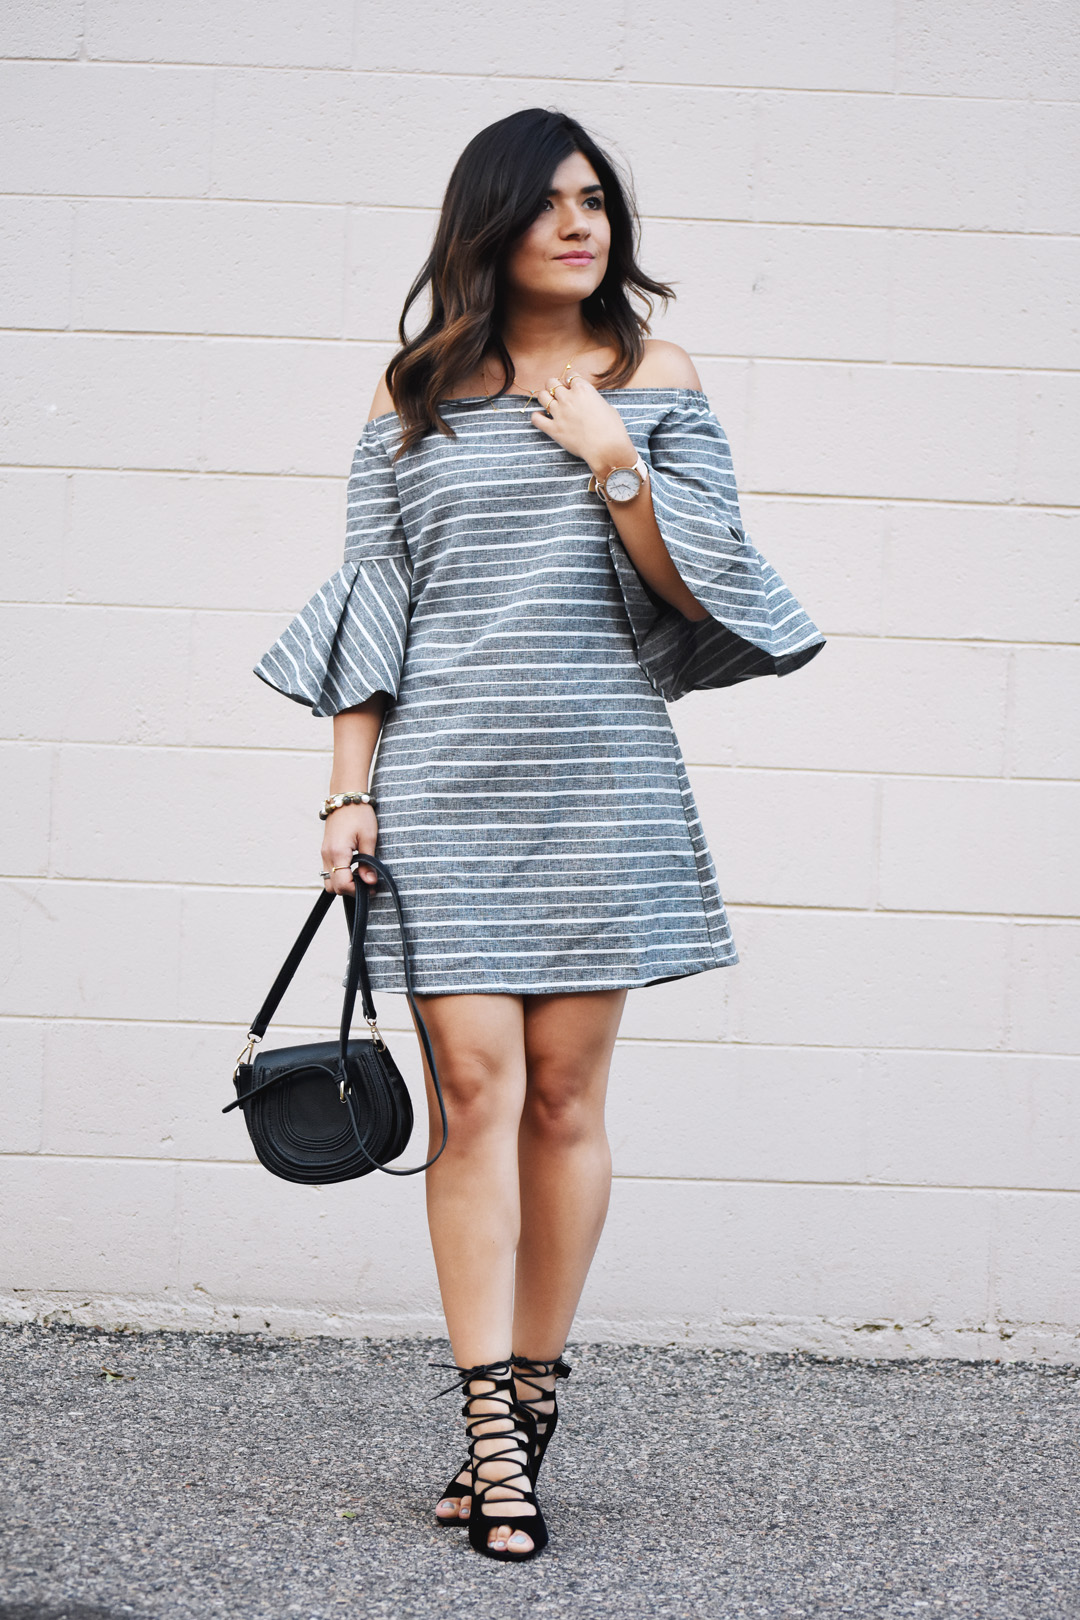 Carolina Hellal of Chic Talk wearing a Chicwish off the shoulder dress, Public desire black lace up sandals, and Mellow handbag world bag.